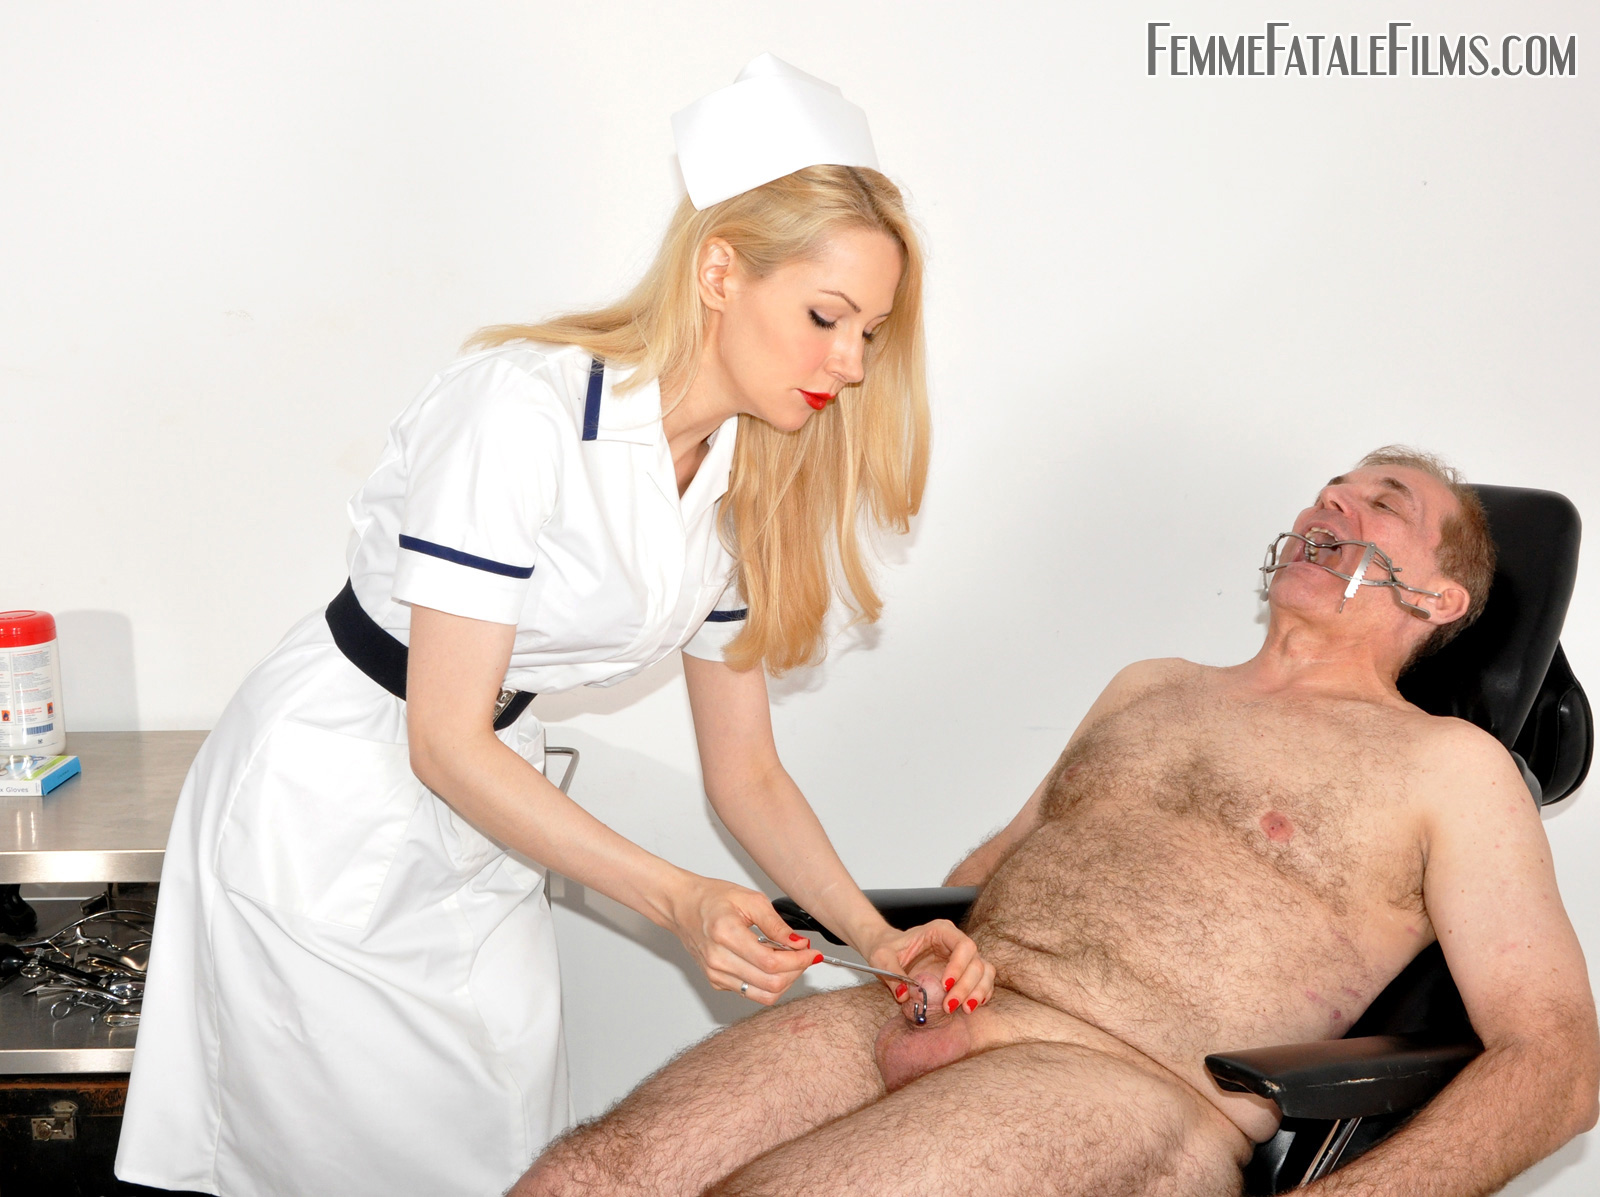 Nurse and women sex pics sexy video